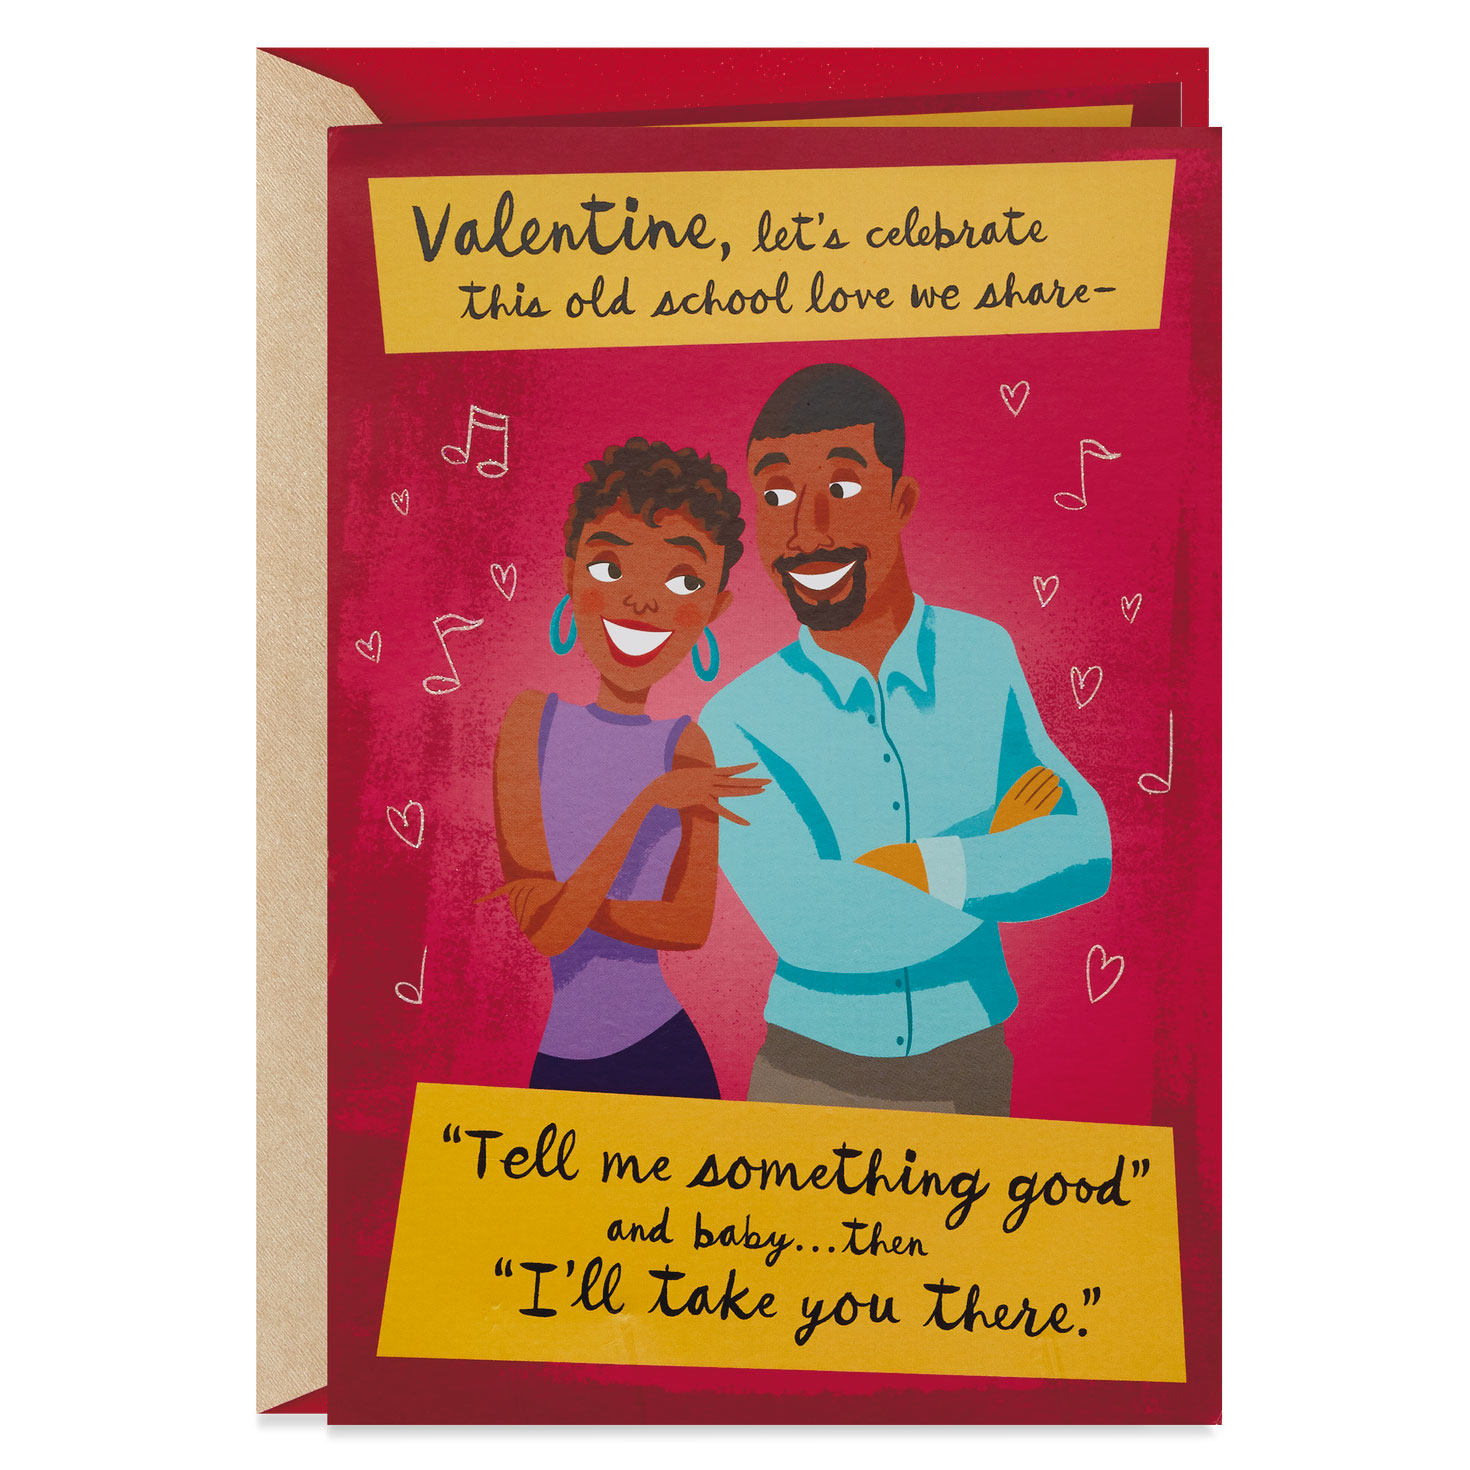 rb song titles romantic pop up valentine's day card